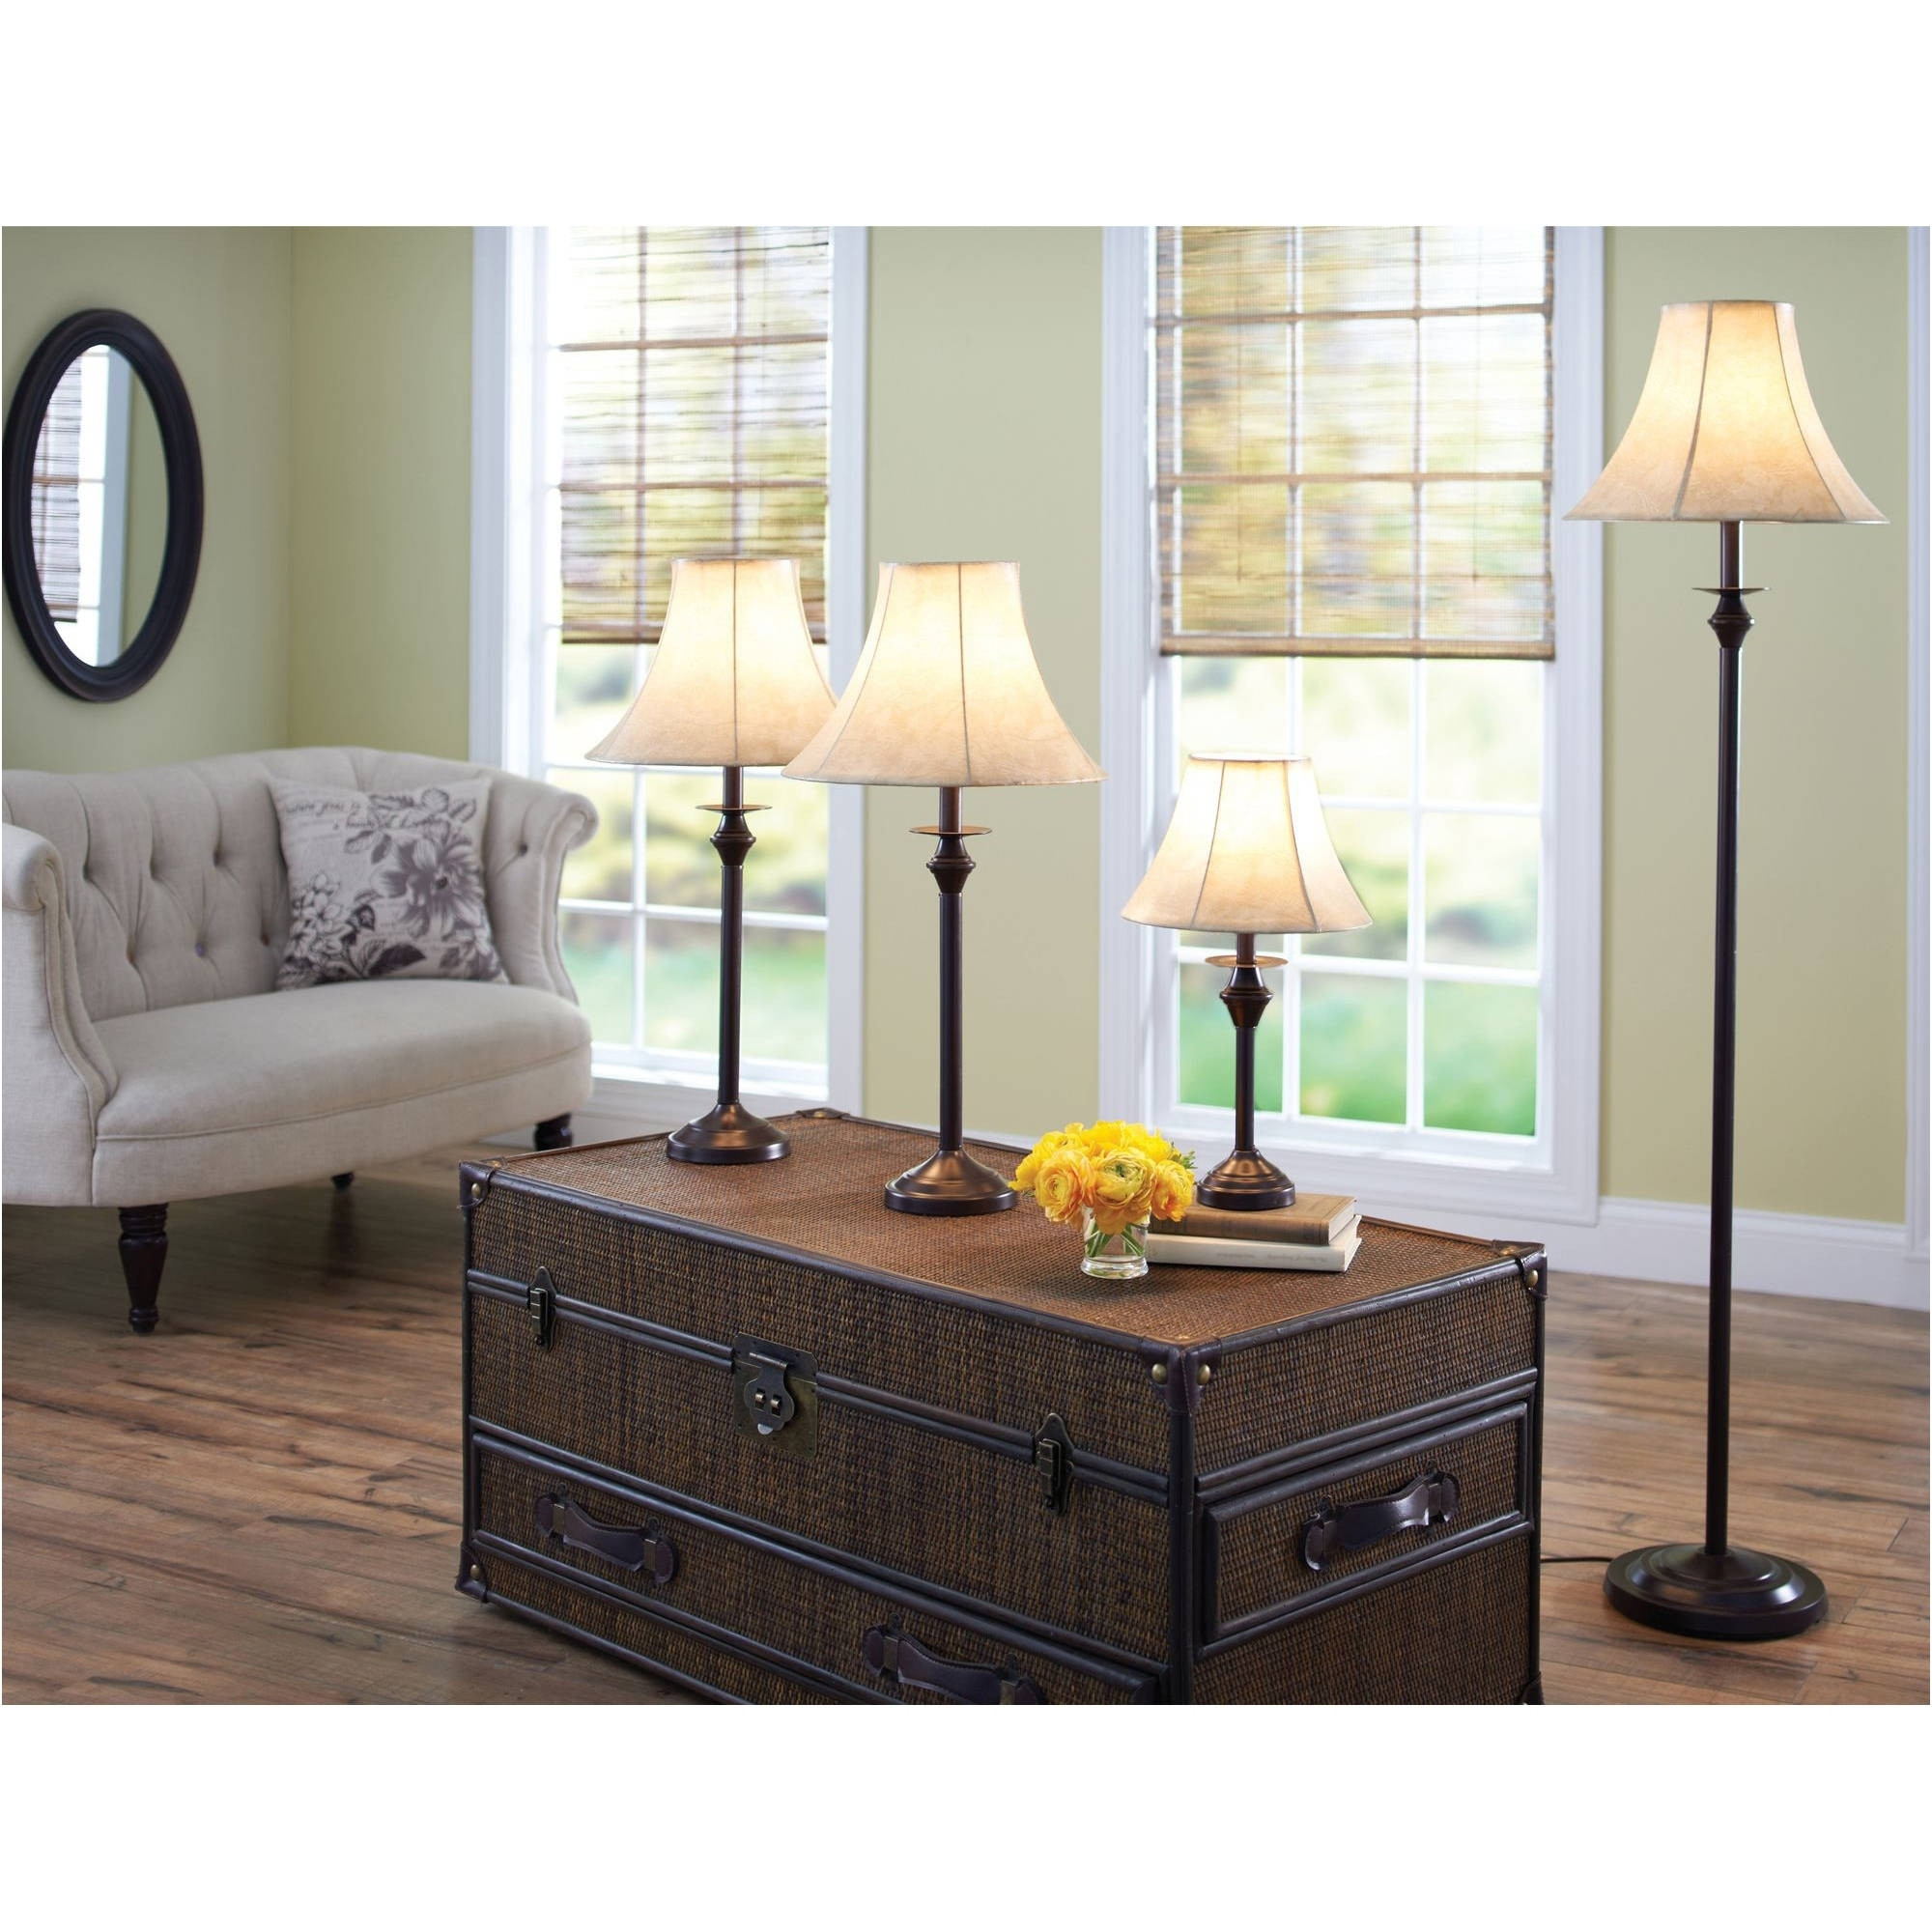 Living Room Tables Walmart  15 Inspirations of Walmart Living Room Table Lamps